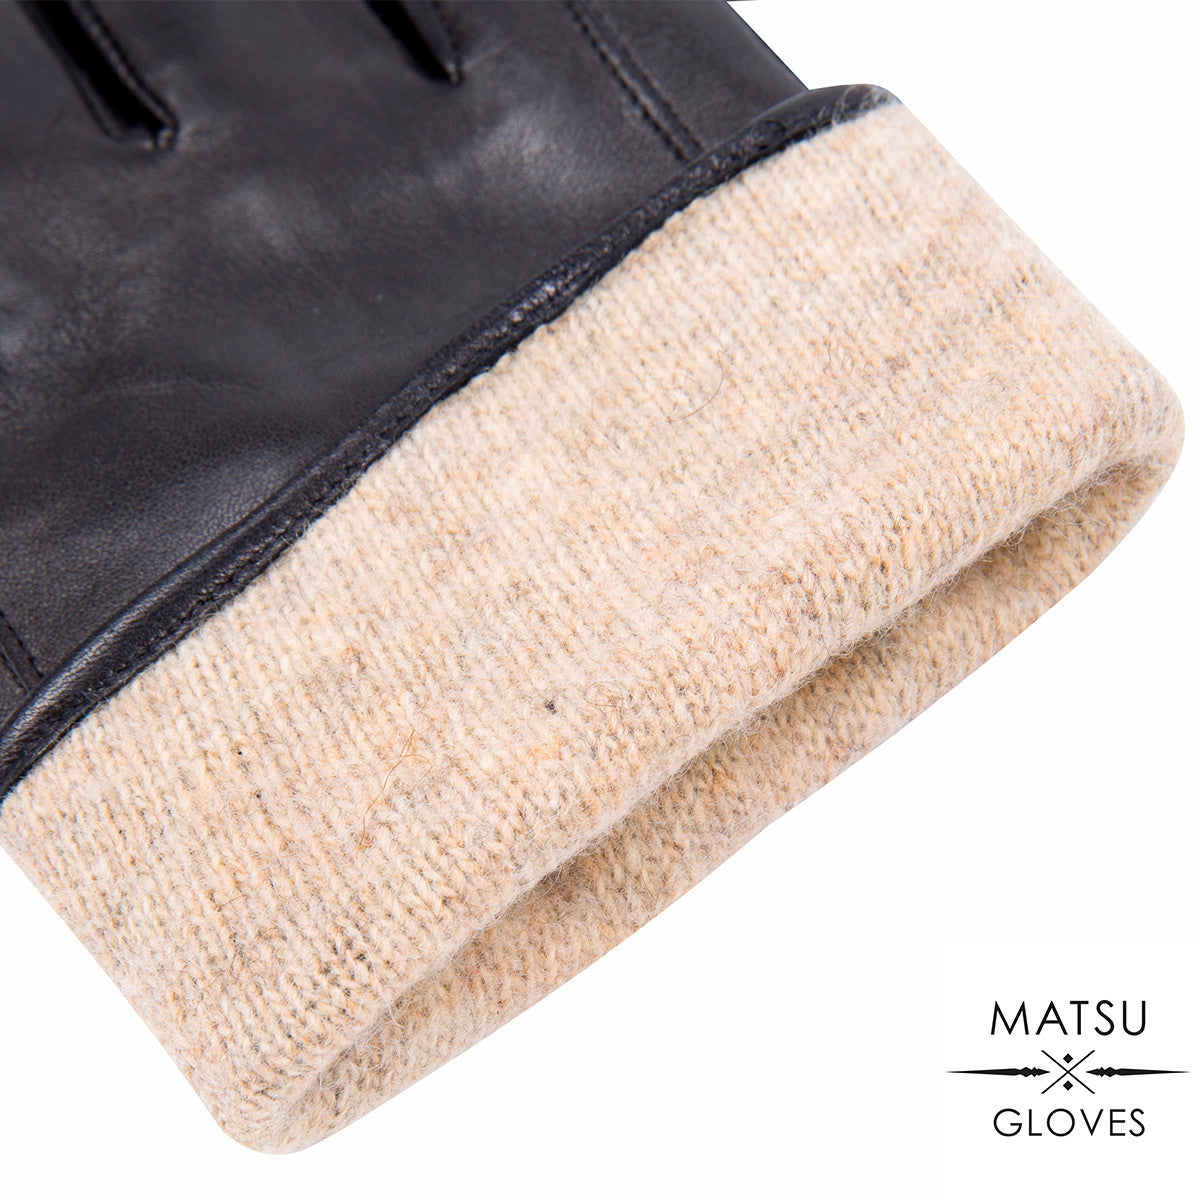 Mens leather touchscreen gloves uk - Touch Screen Leather Gloves Uk